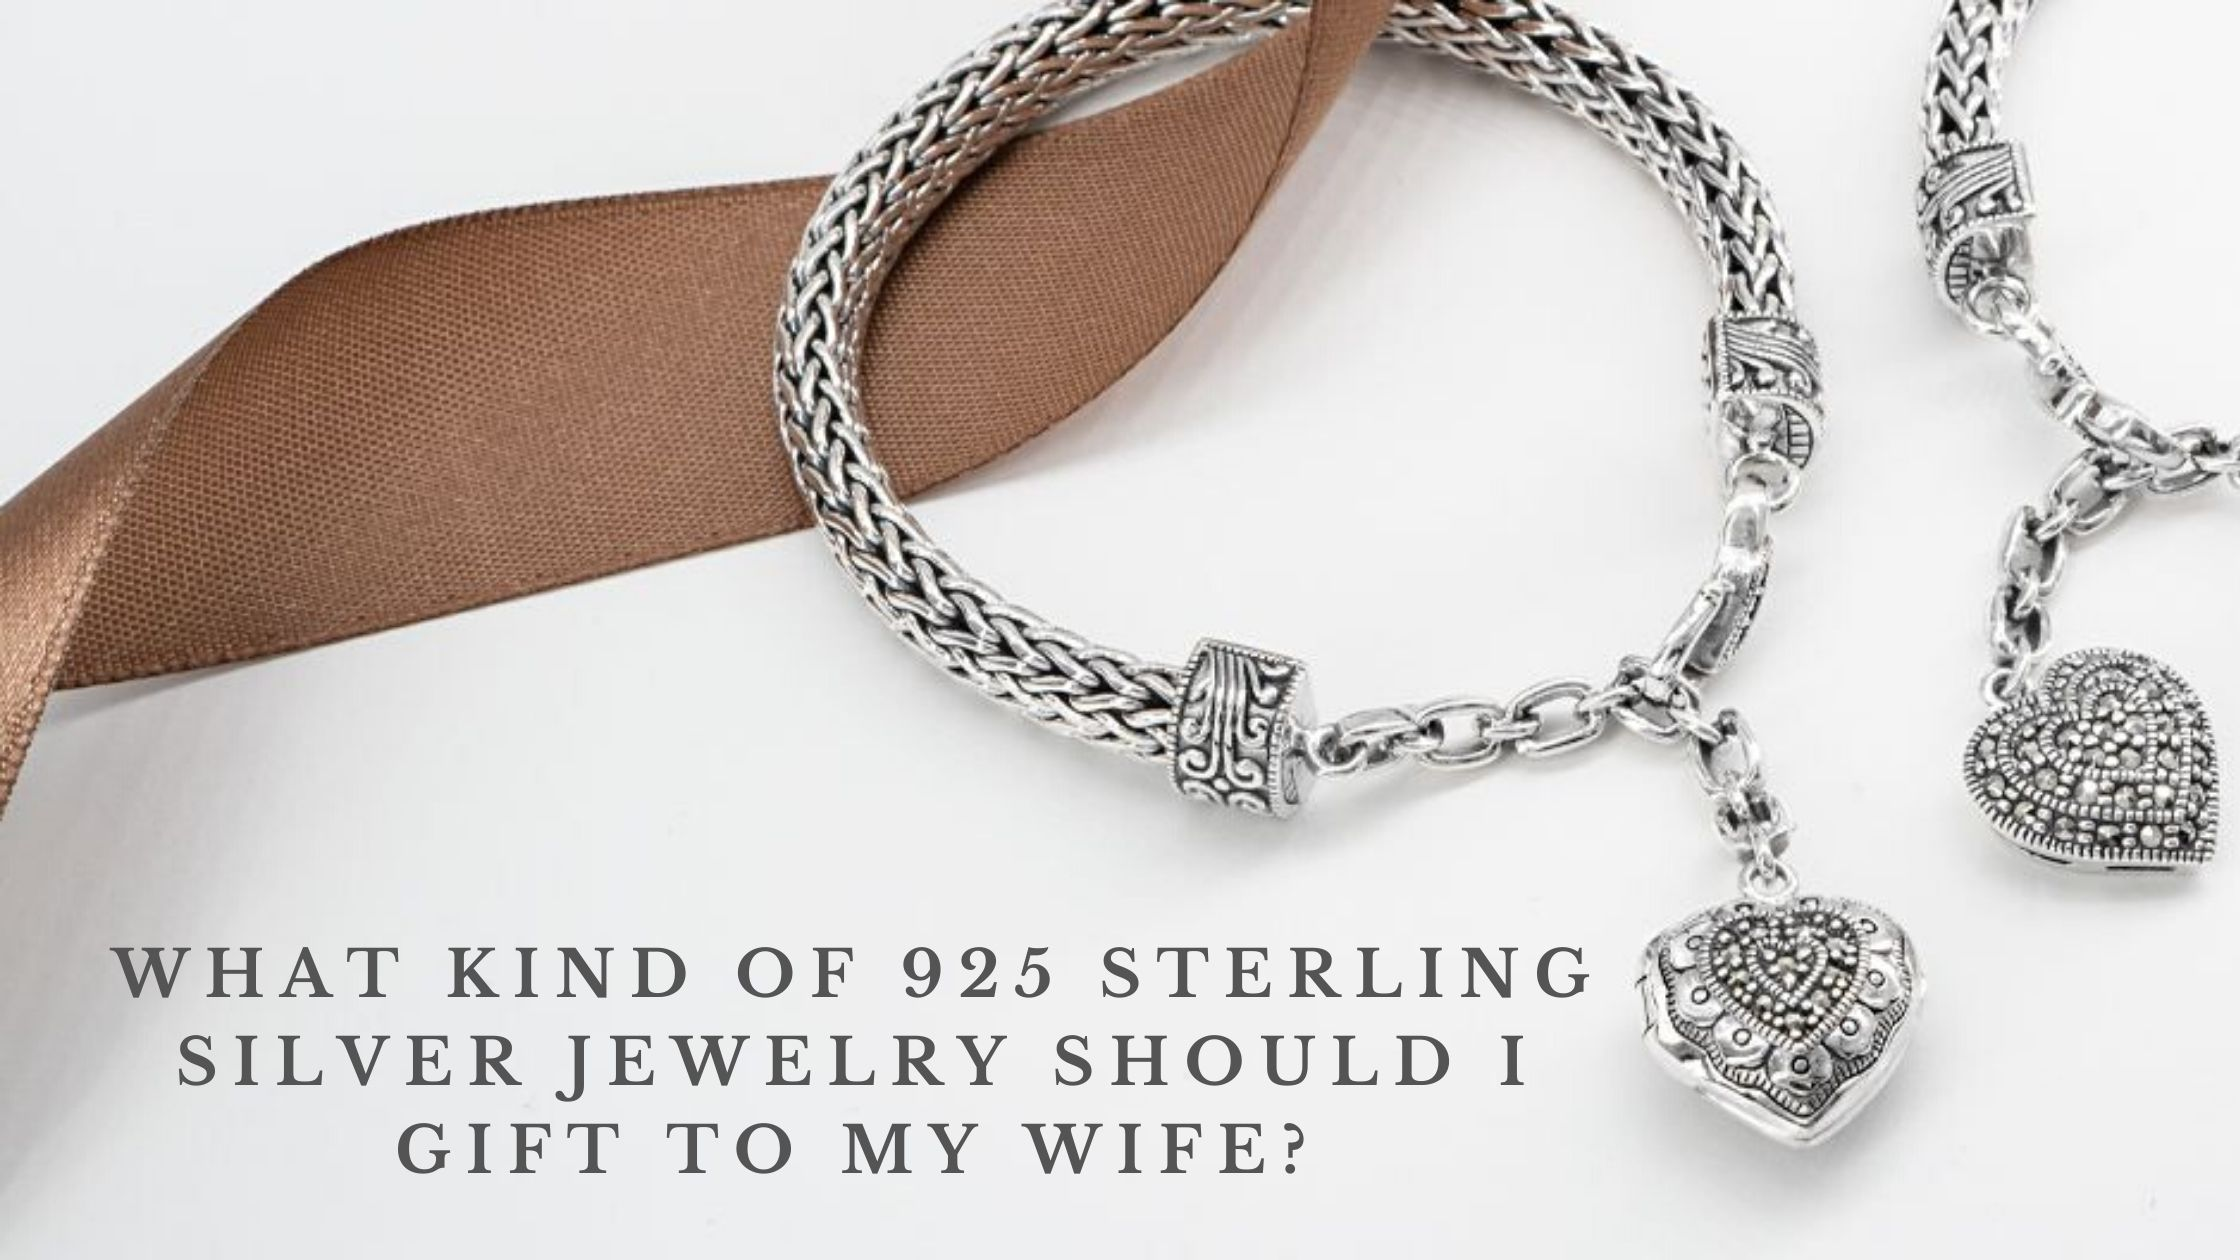 What Kind Of 925 Sterling Silver Jewelry Should I Gift To My Wife?